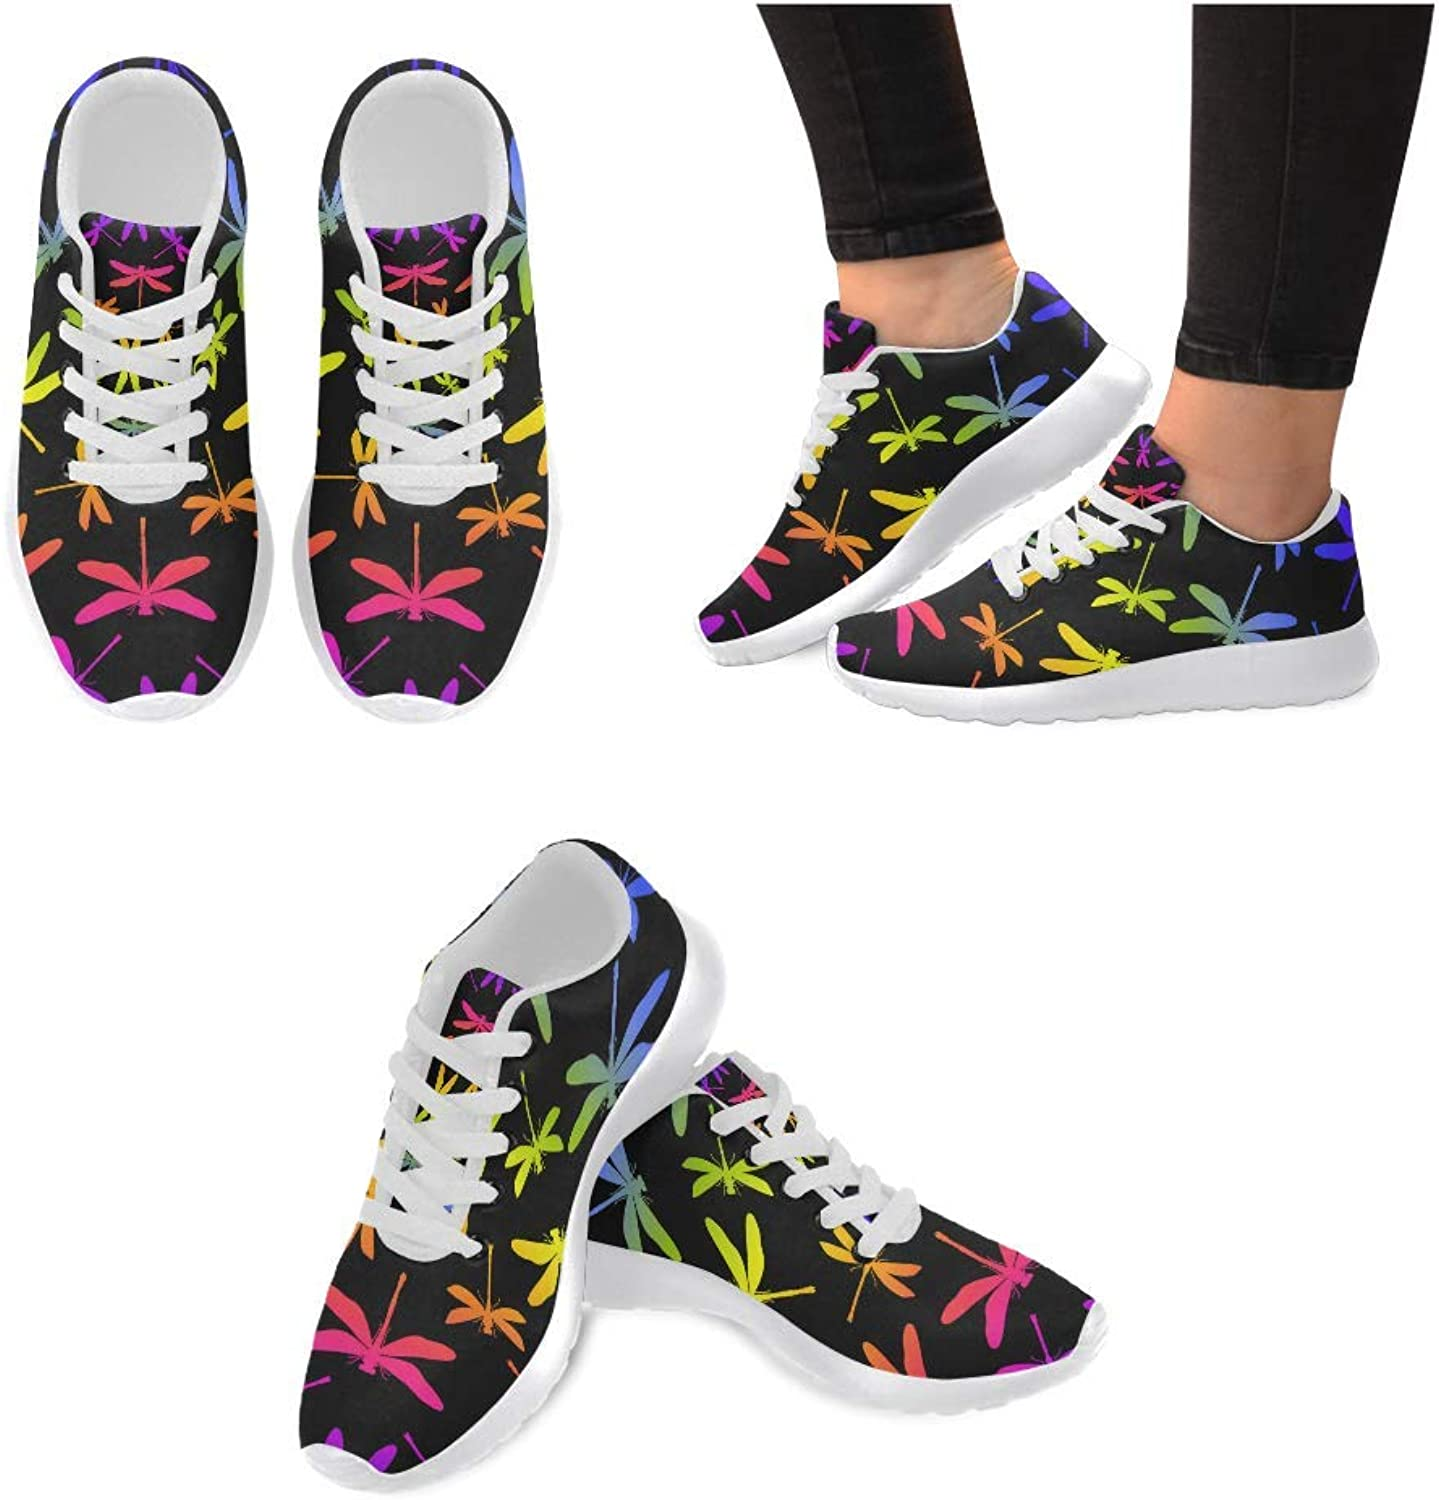 InterestPrint Women's Sneakers Dragonflies Jogging Work shoes Lightweight Sport Running Flats